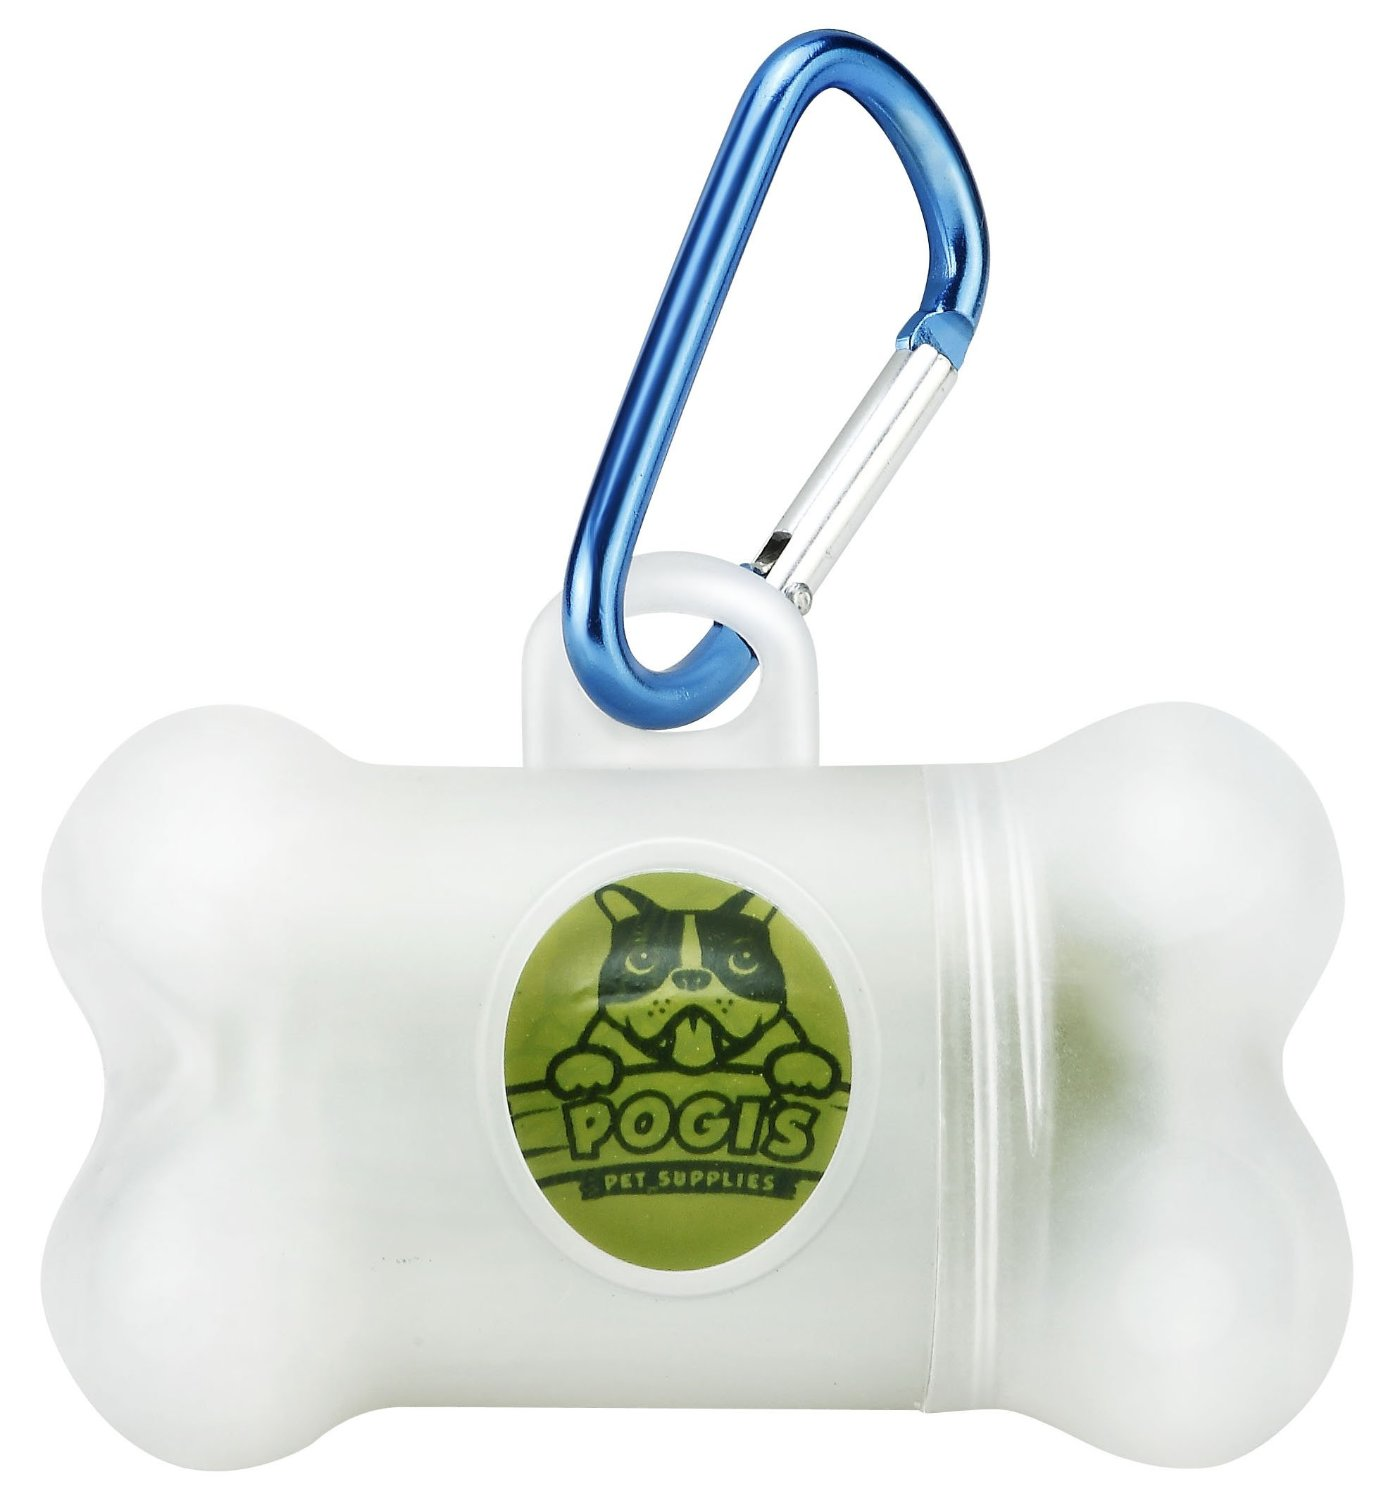 Pogi's Poop Bag Dispenser - Includes 1 Roll (15 Bags) - Large, Earth-Friendly, Scented, Leak-Proof Pet Waste Bags